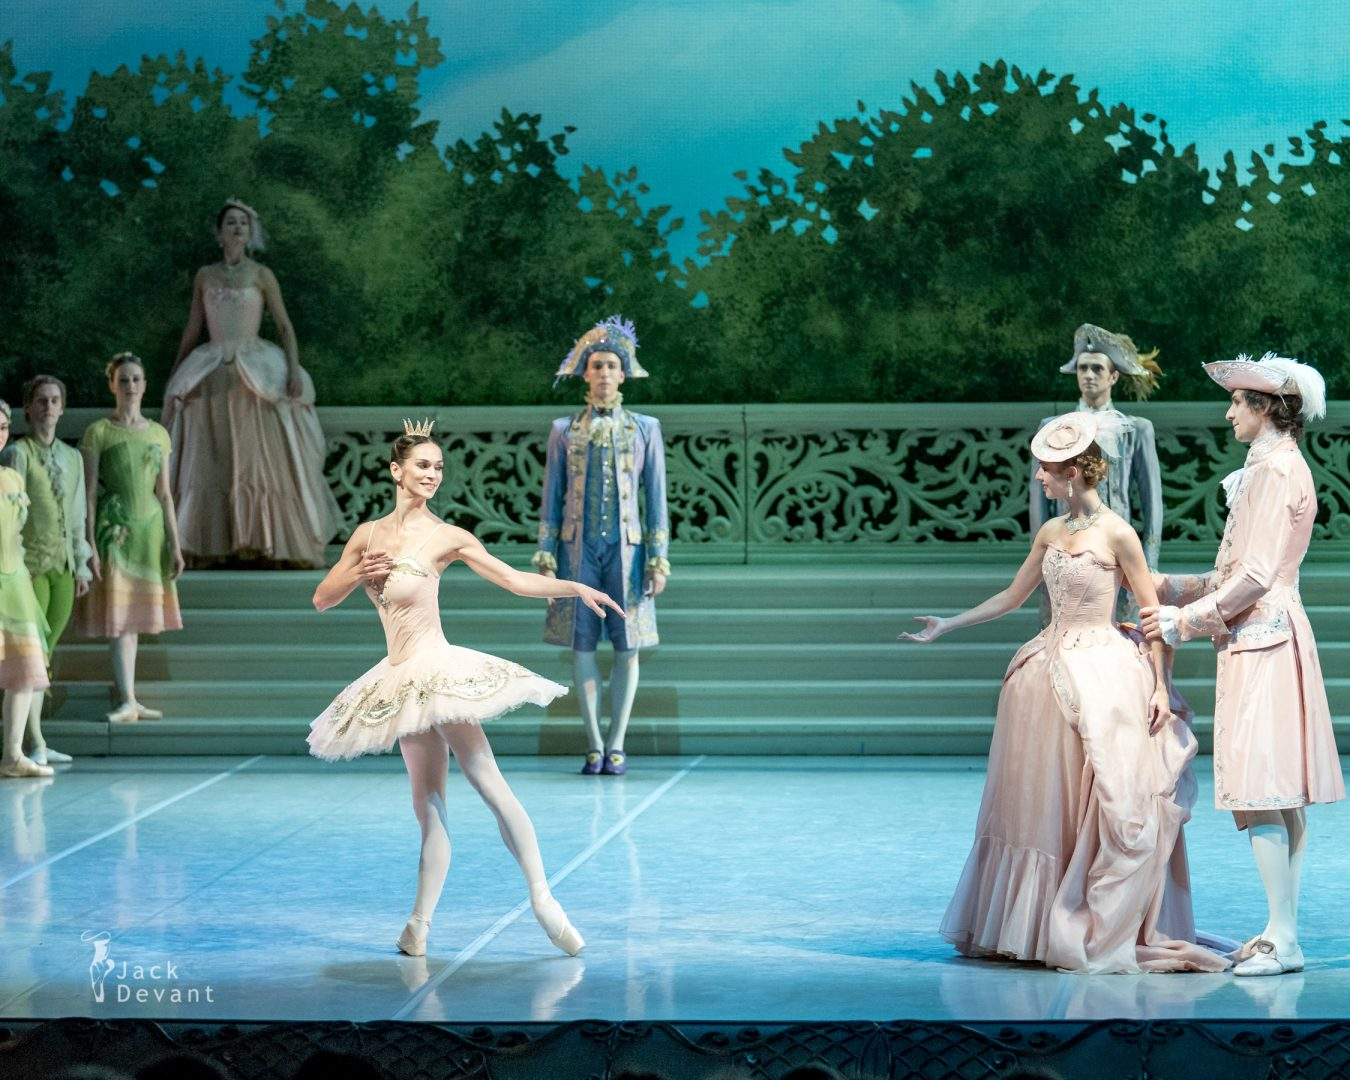 The Sleeping Beauty Princess Aurora — Polina Semionova (Полина Семионова)